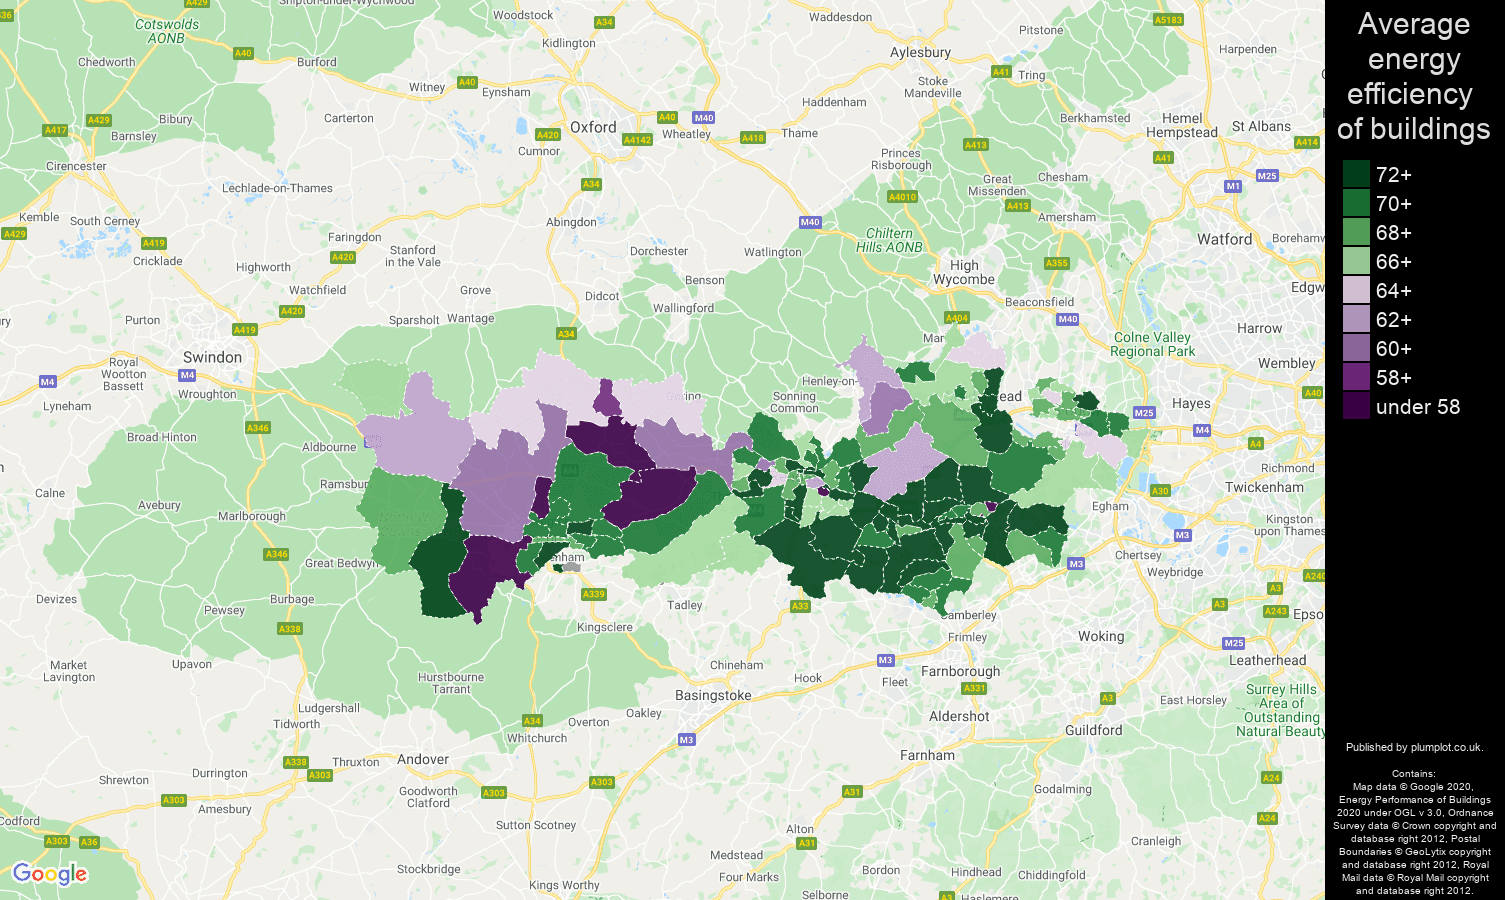 Berkshire map of energy efficiency of flats